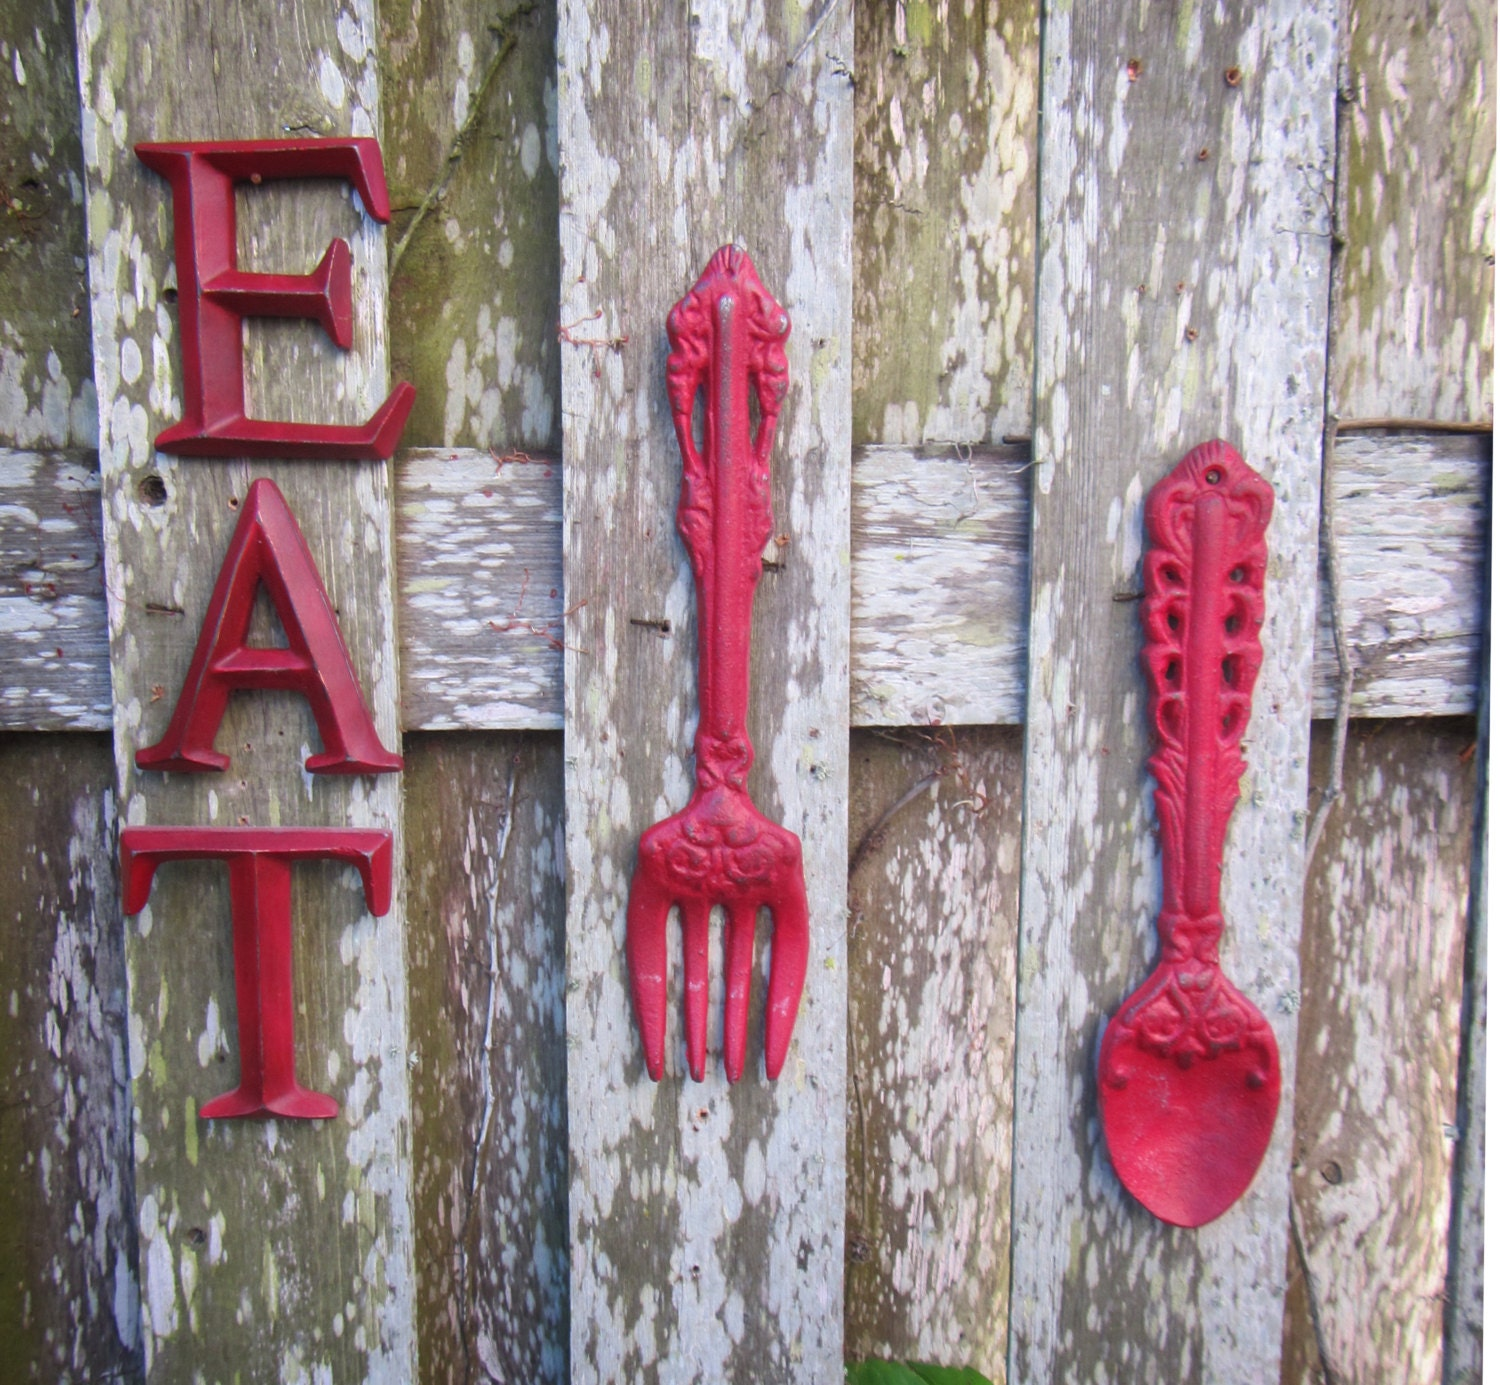 Https Www Etsy Com Listing 192741217 Large Fork And Spoon Fork And Spoon